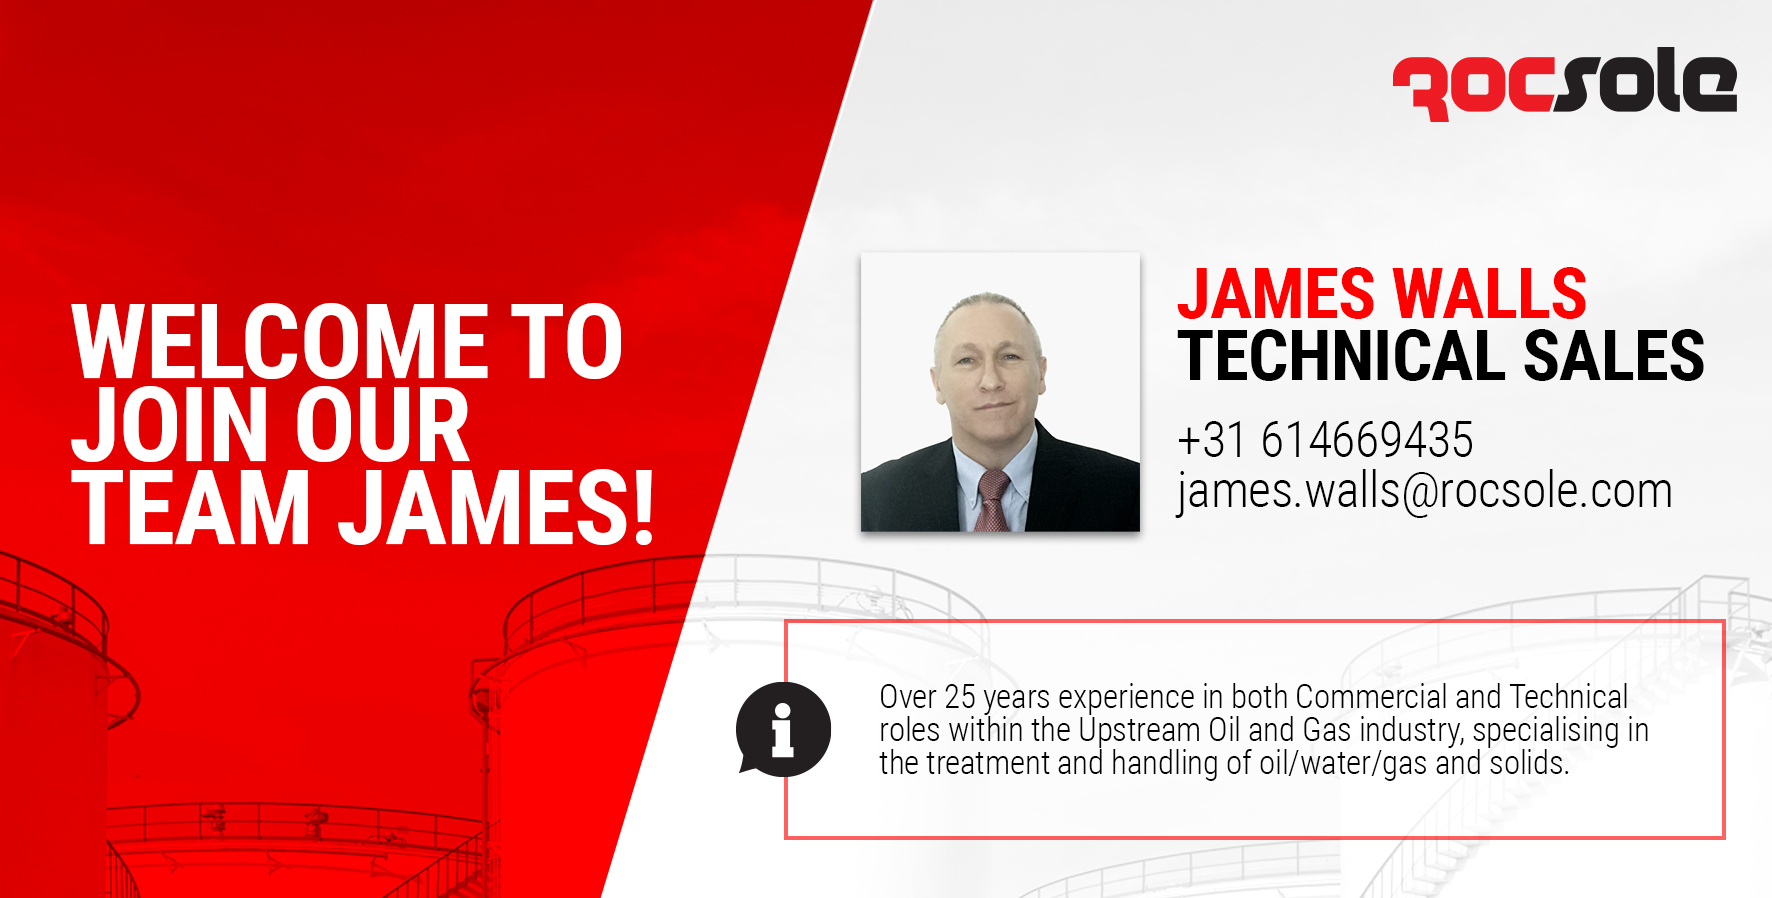 Welcome to Our Team, James!